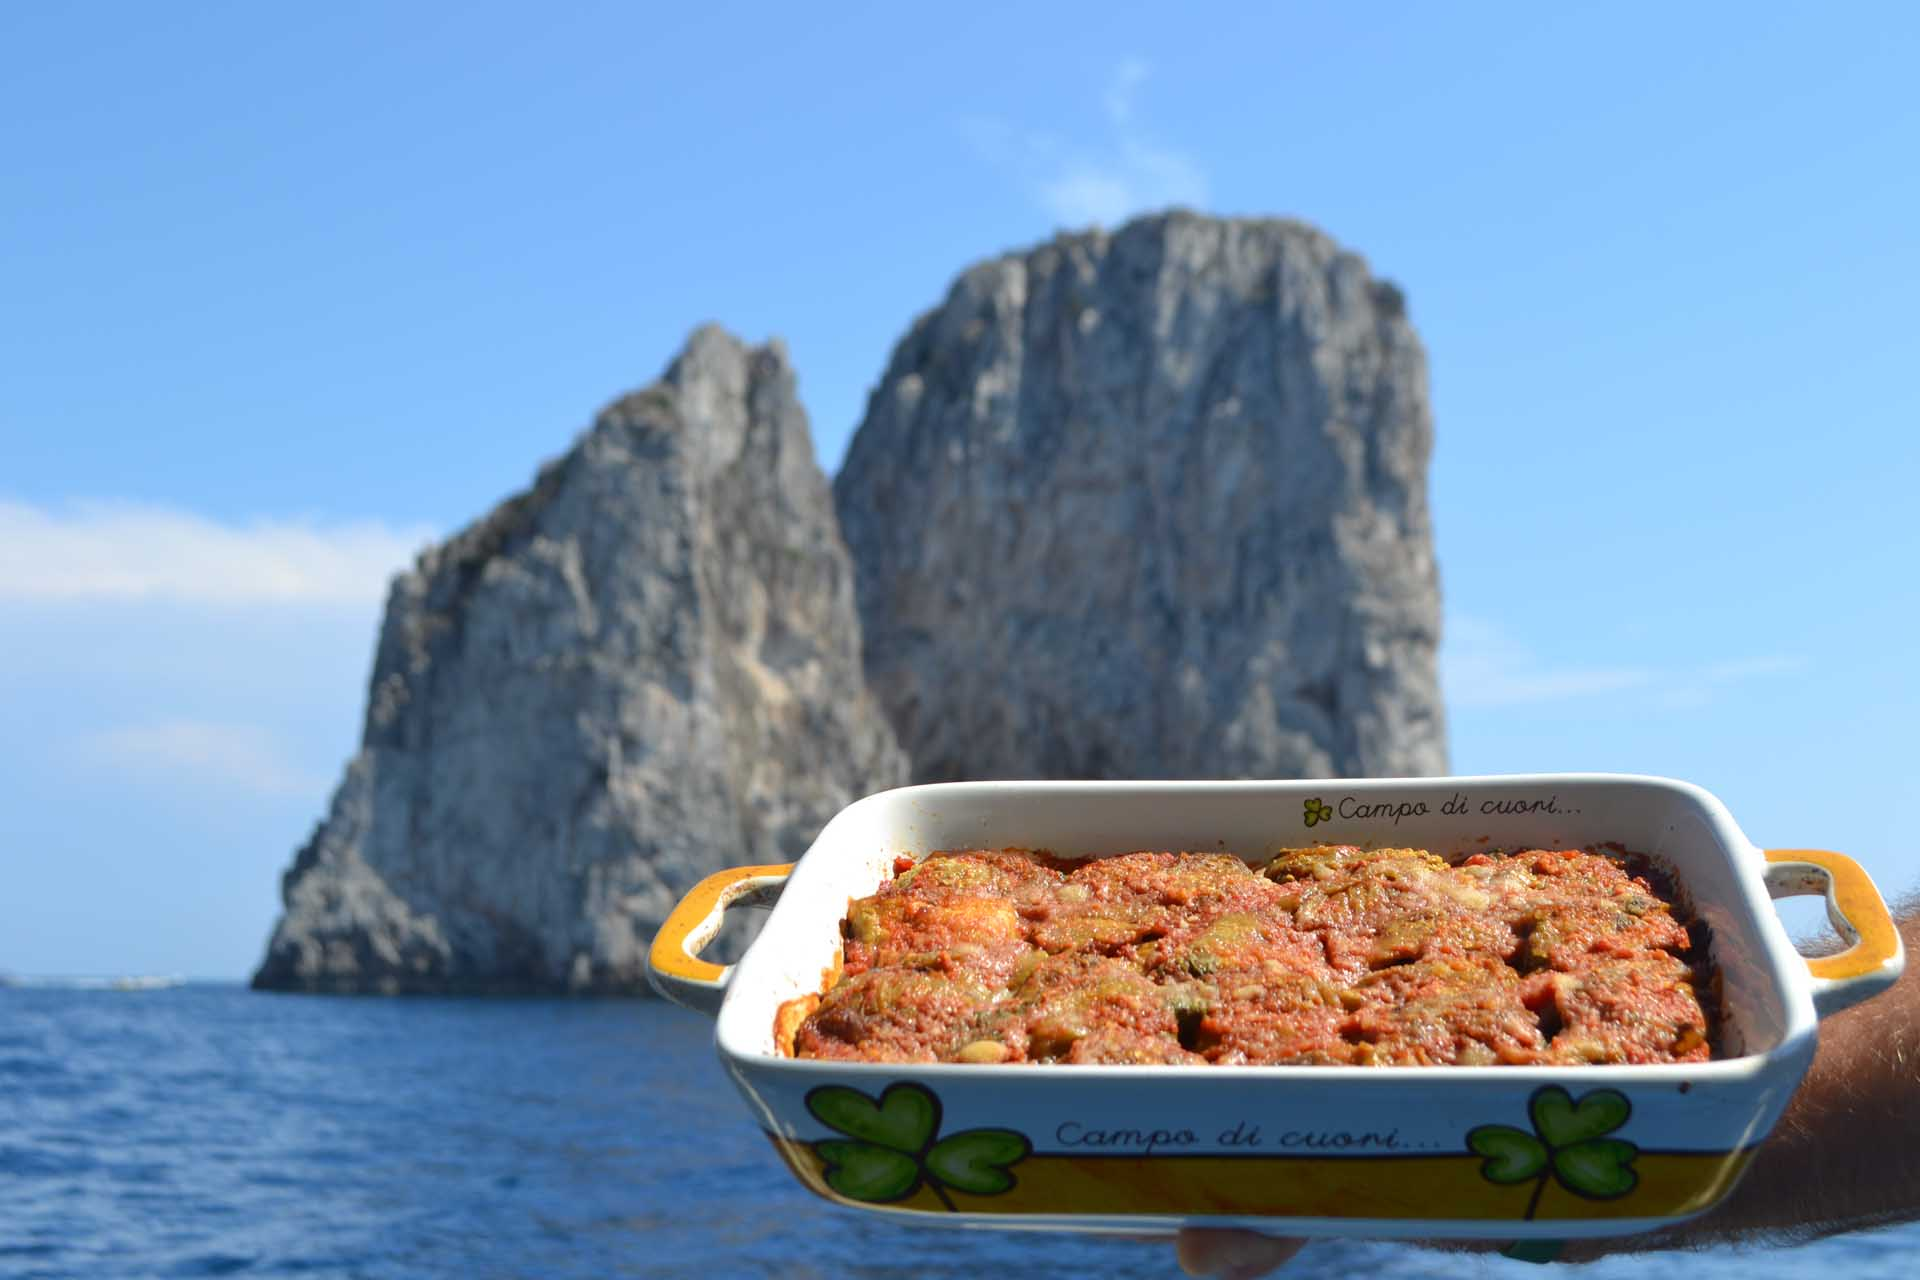 Lunch on the boat in Capri with eggplant parmigiana